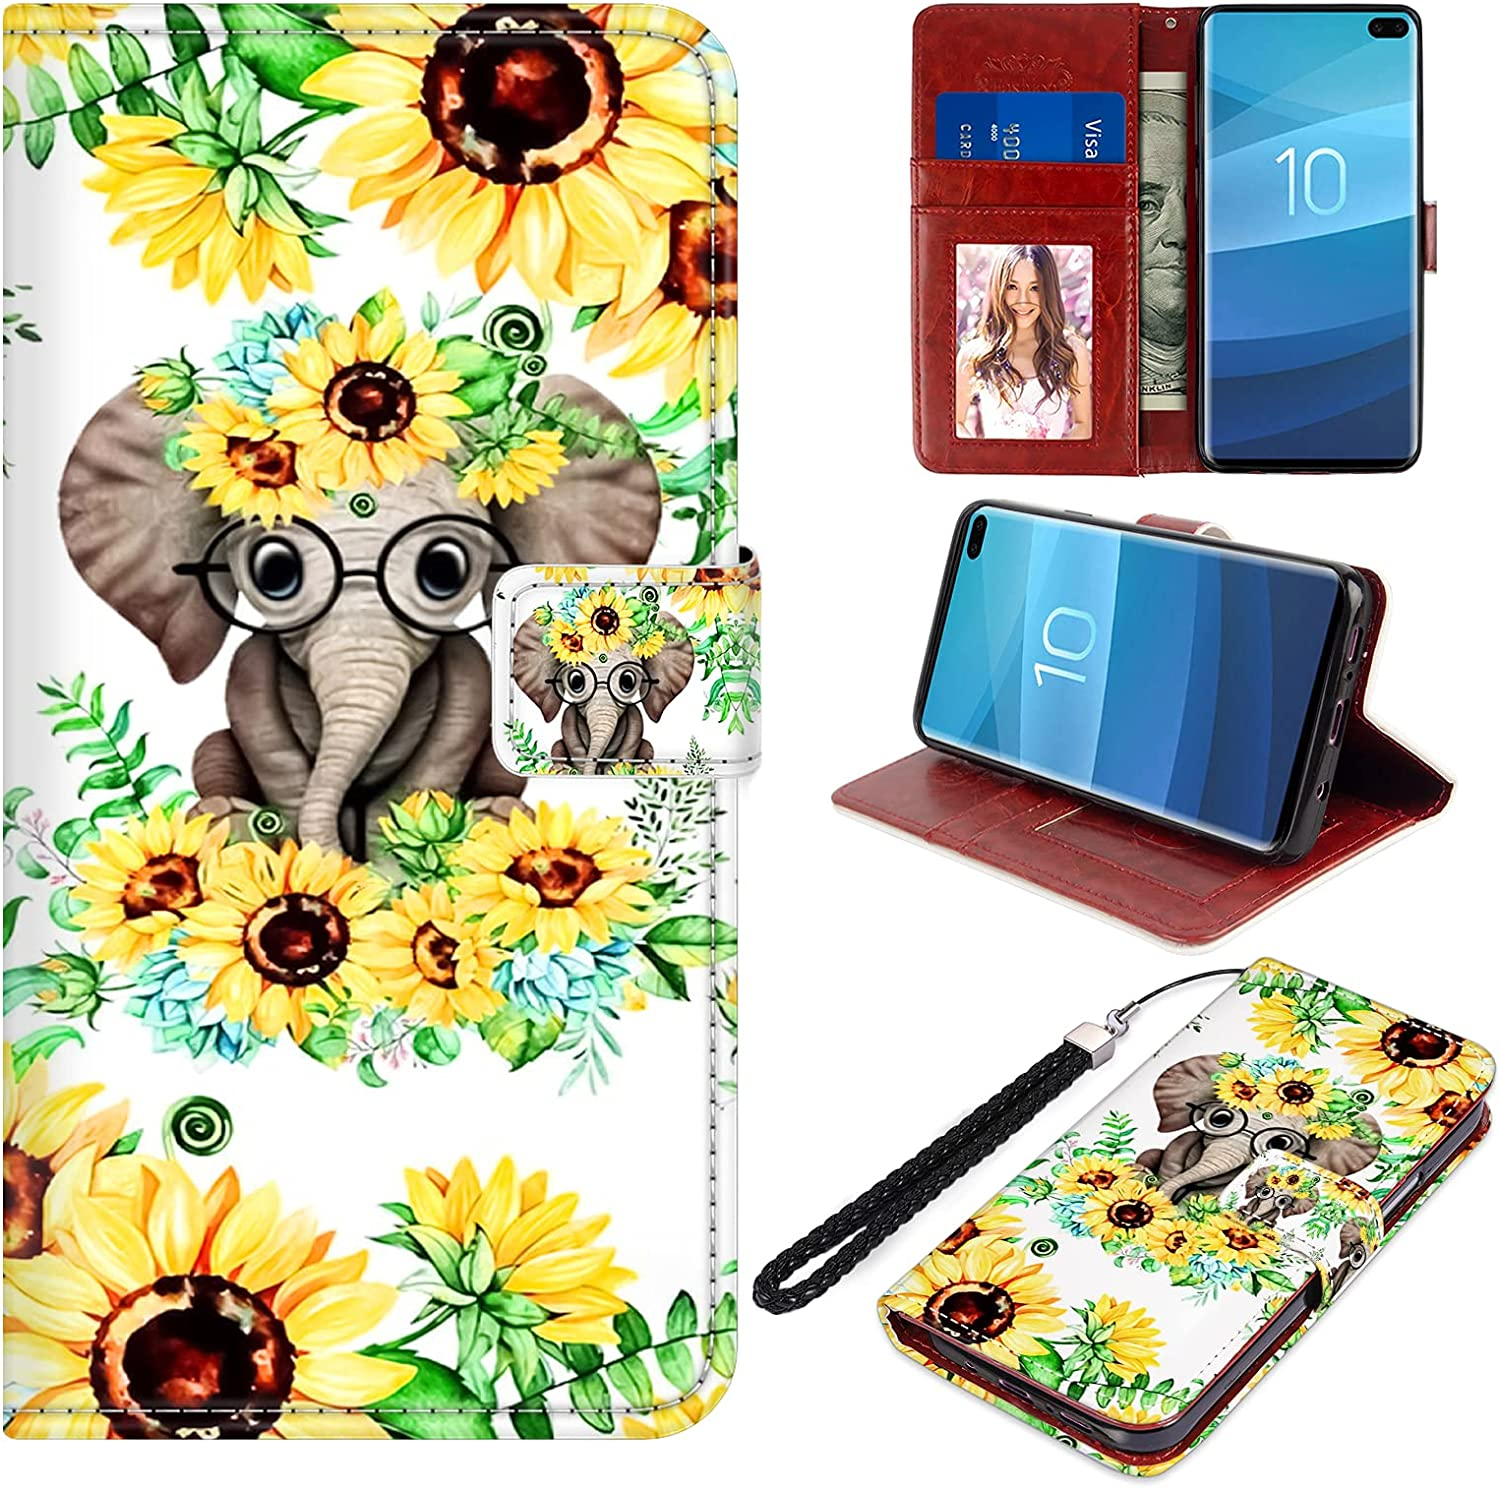 Samsung Galaxy S10 Plus Wallet Case PU Leather Folio Flip Cover Sunflower Elephant Flowers Floral Magnetic Credit Card Holder Protective with Hand Wrist Strap Kickstand Women Girls for S10 Plus 6.4